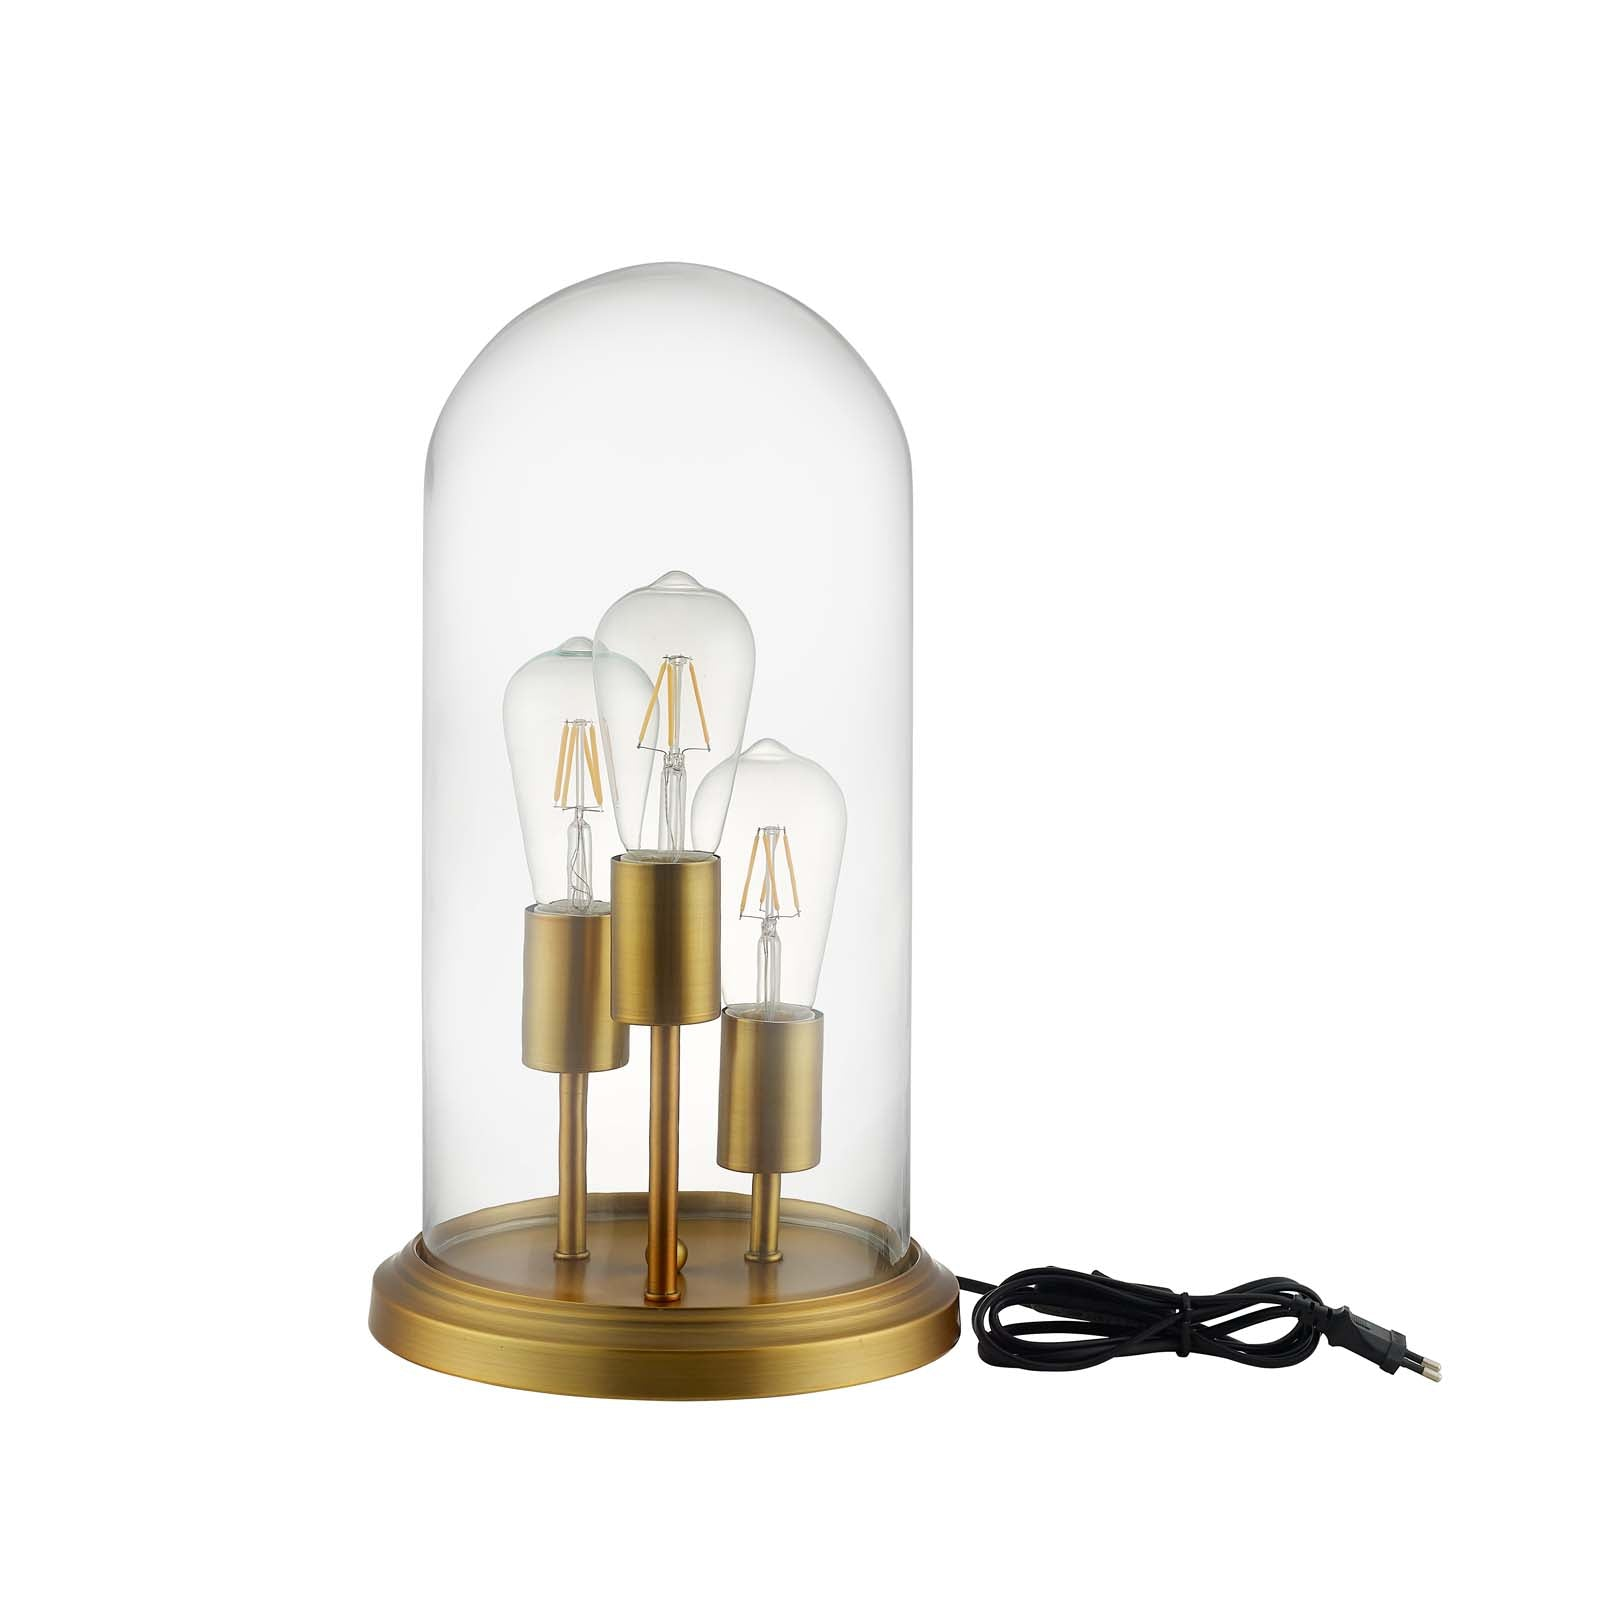 Admiration Cloche Table Lamp